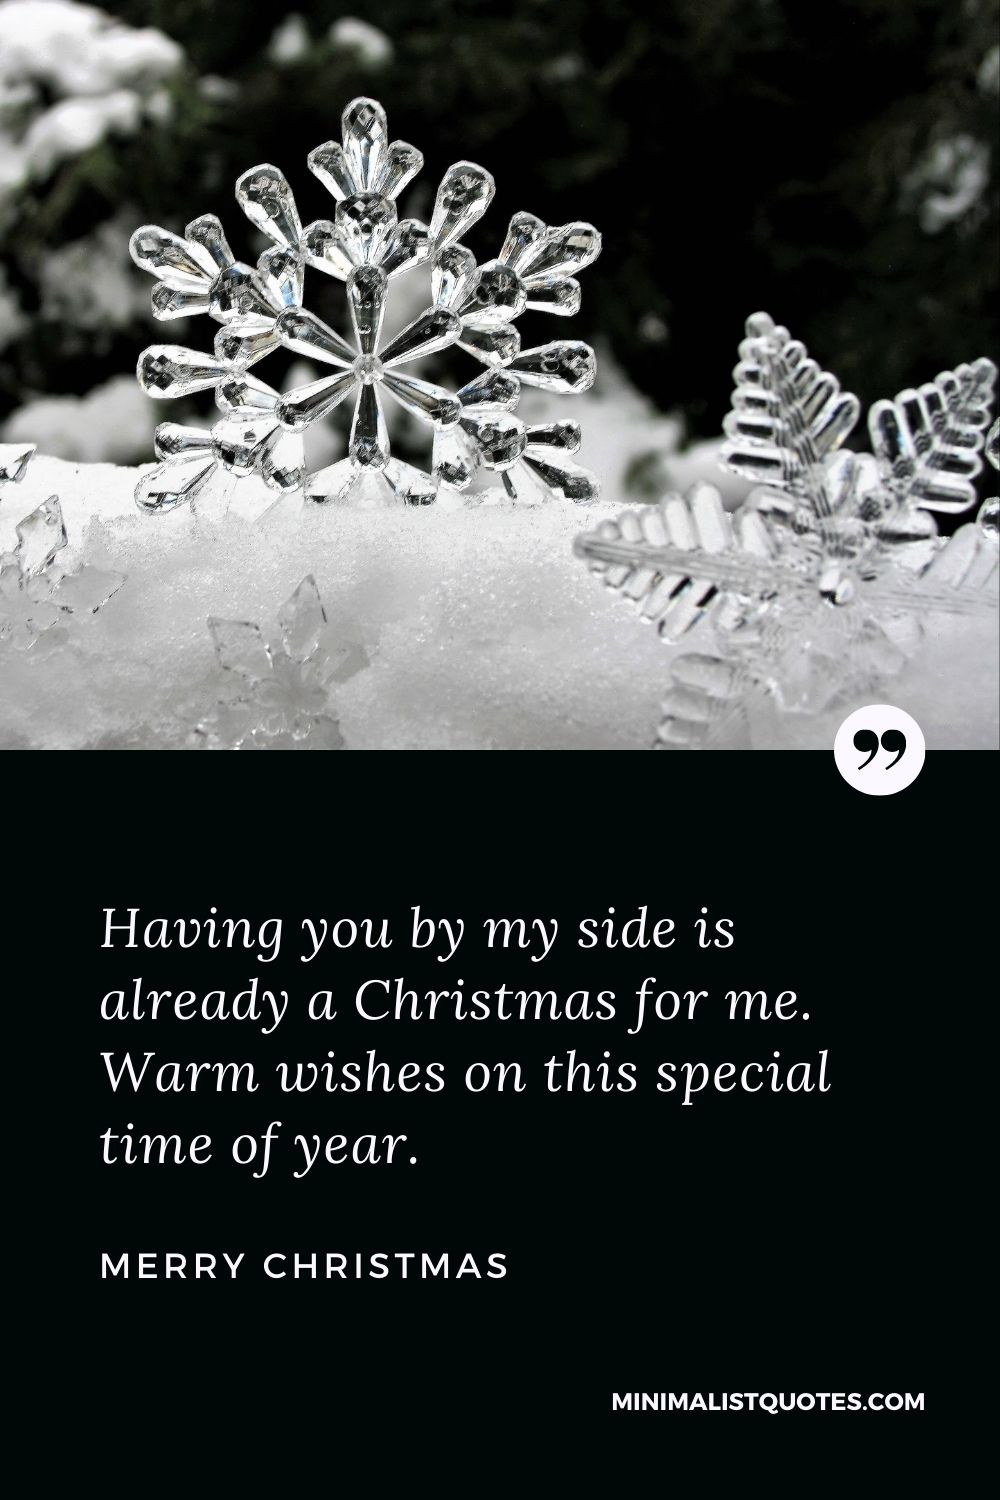 Merry Christmas Wish - Having you by my side is already a Christmas for me. Warm wishes on this special time of year.